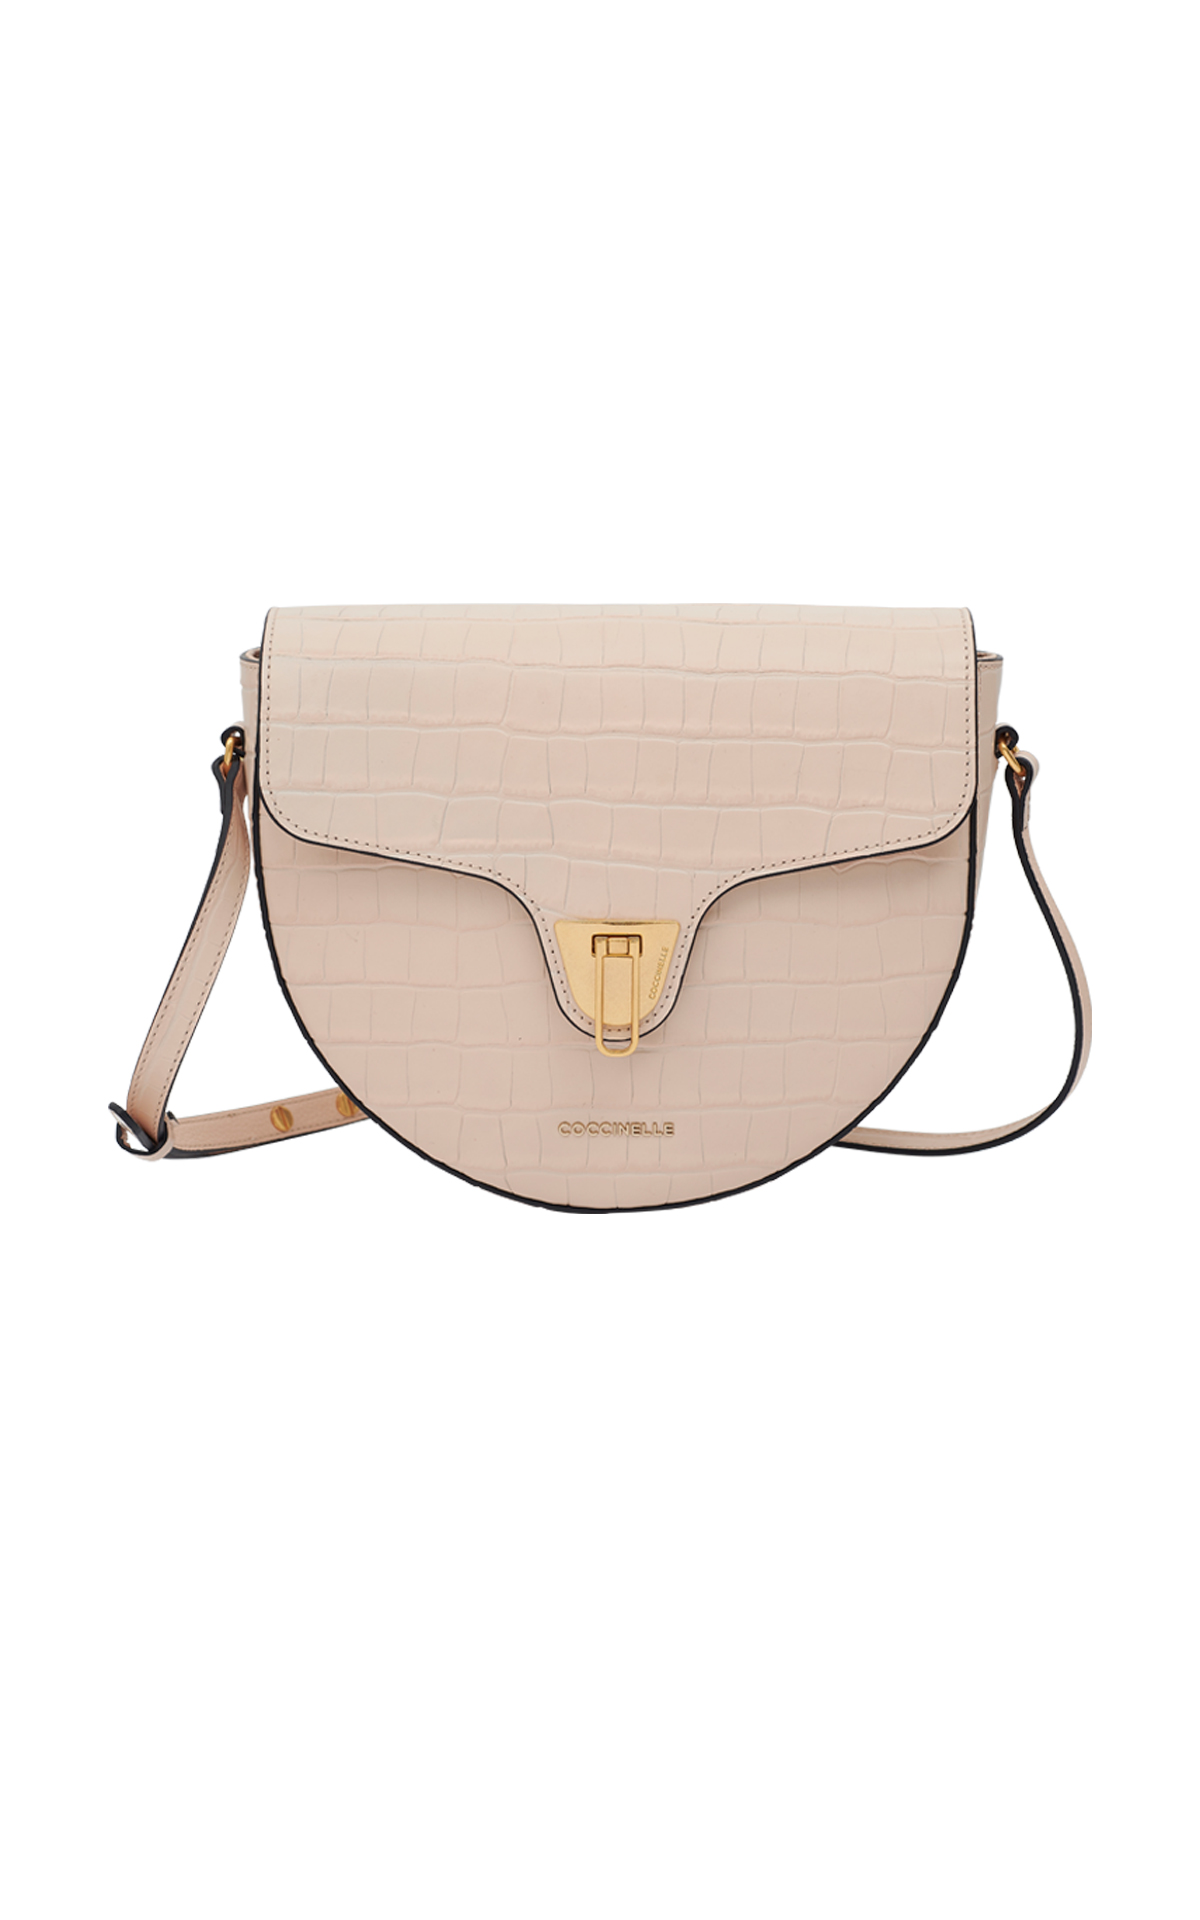 Beige shoulder bag Coccinelle